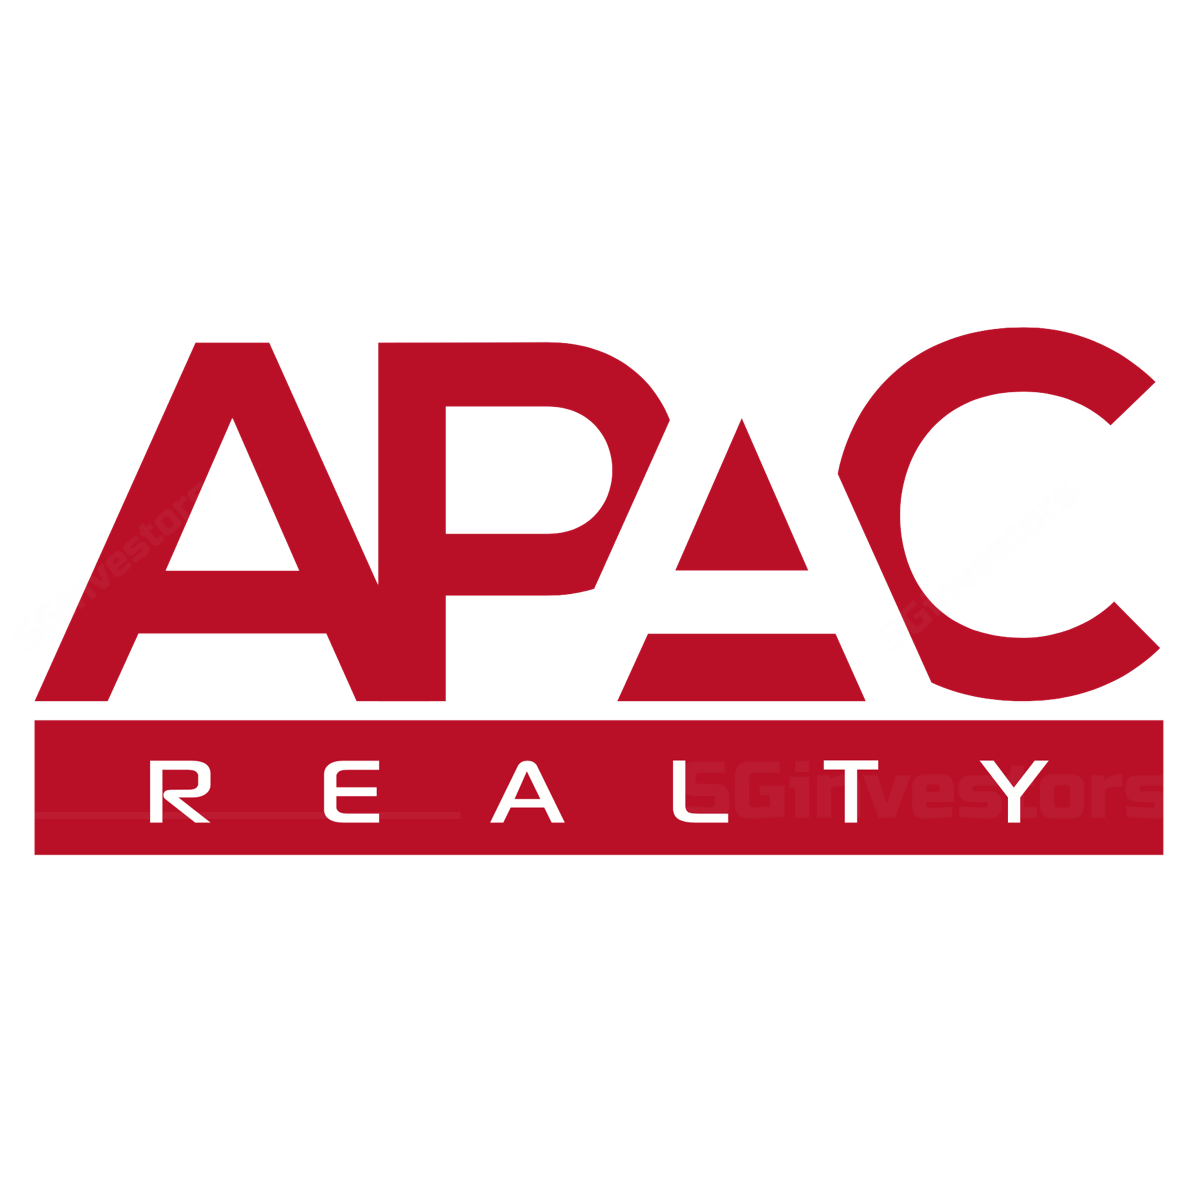 APAC Realty - DBS Vickers 2018-06-06: Acquisition Of New Headquarters